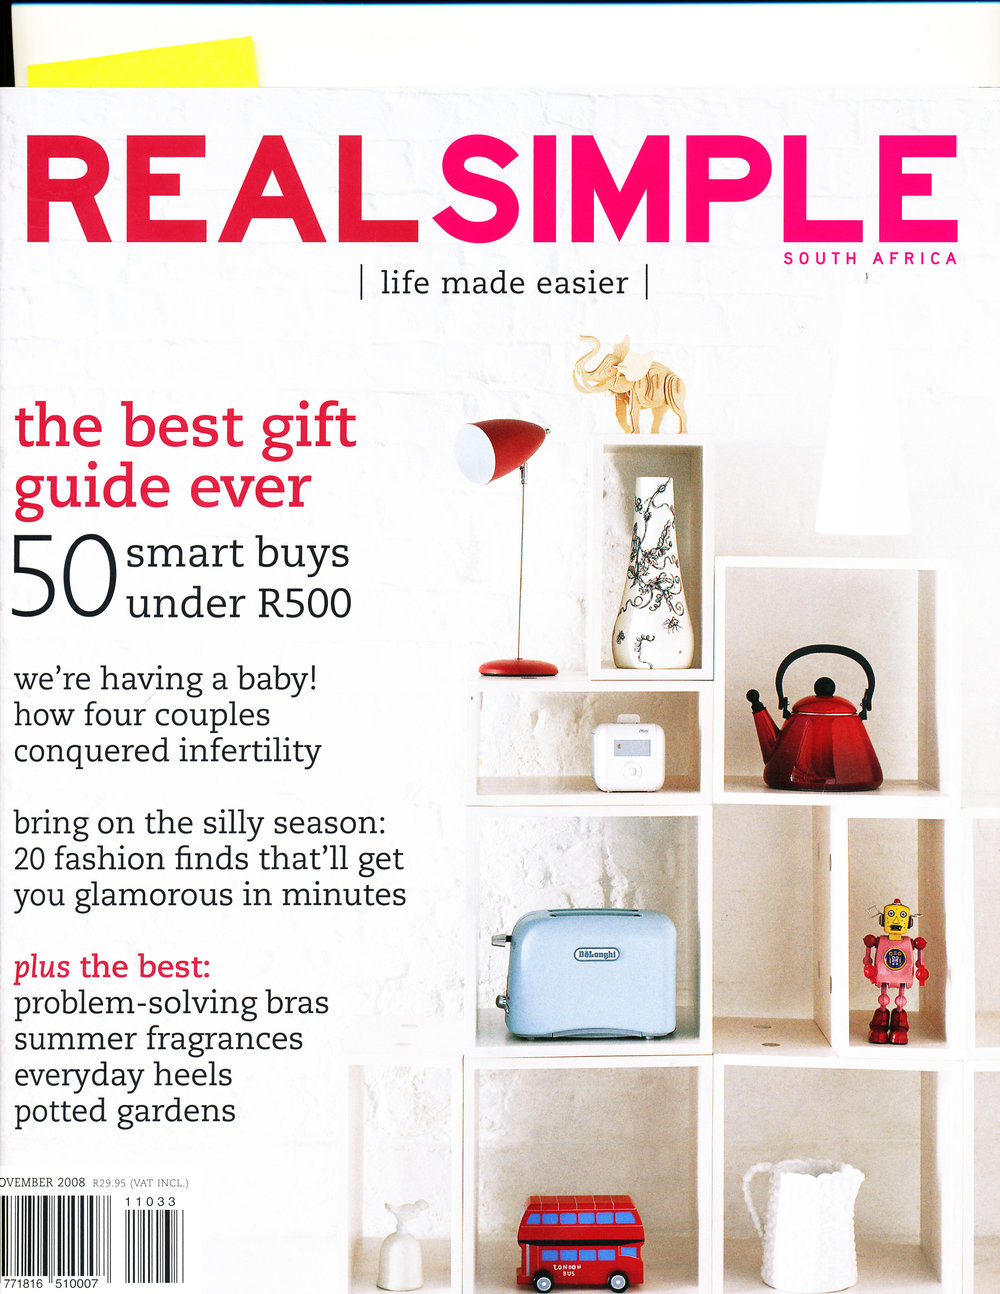 REAL SIMPLE NOV 2008